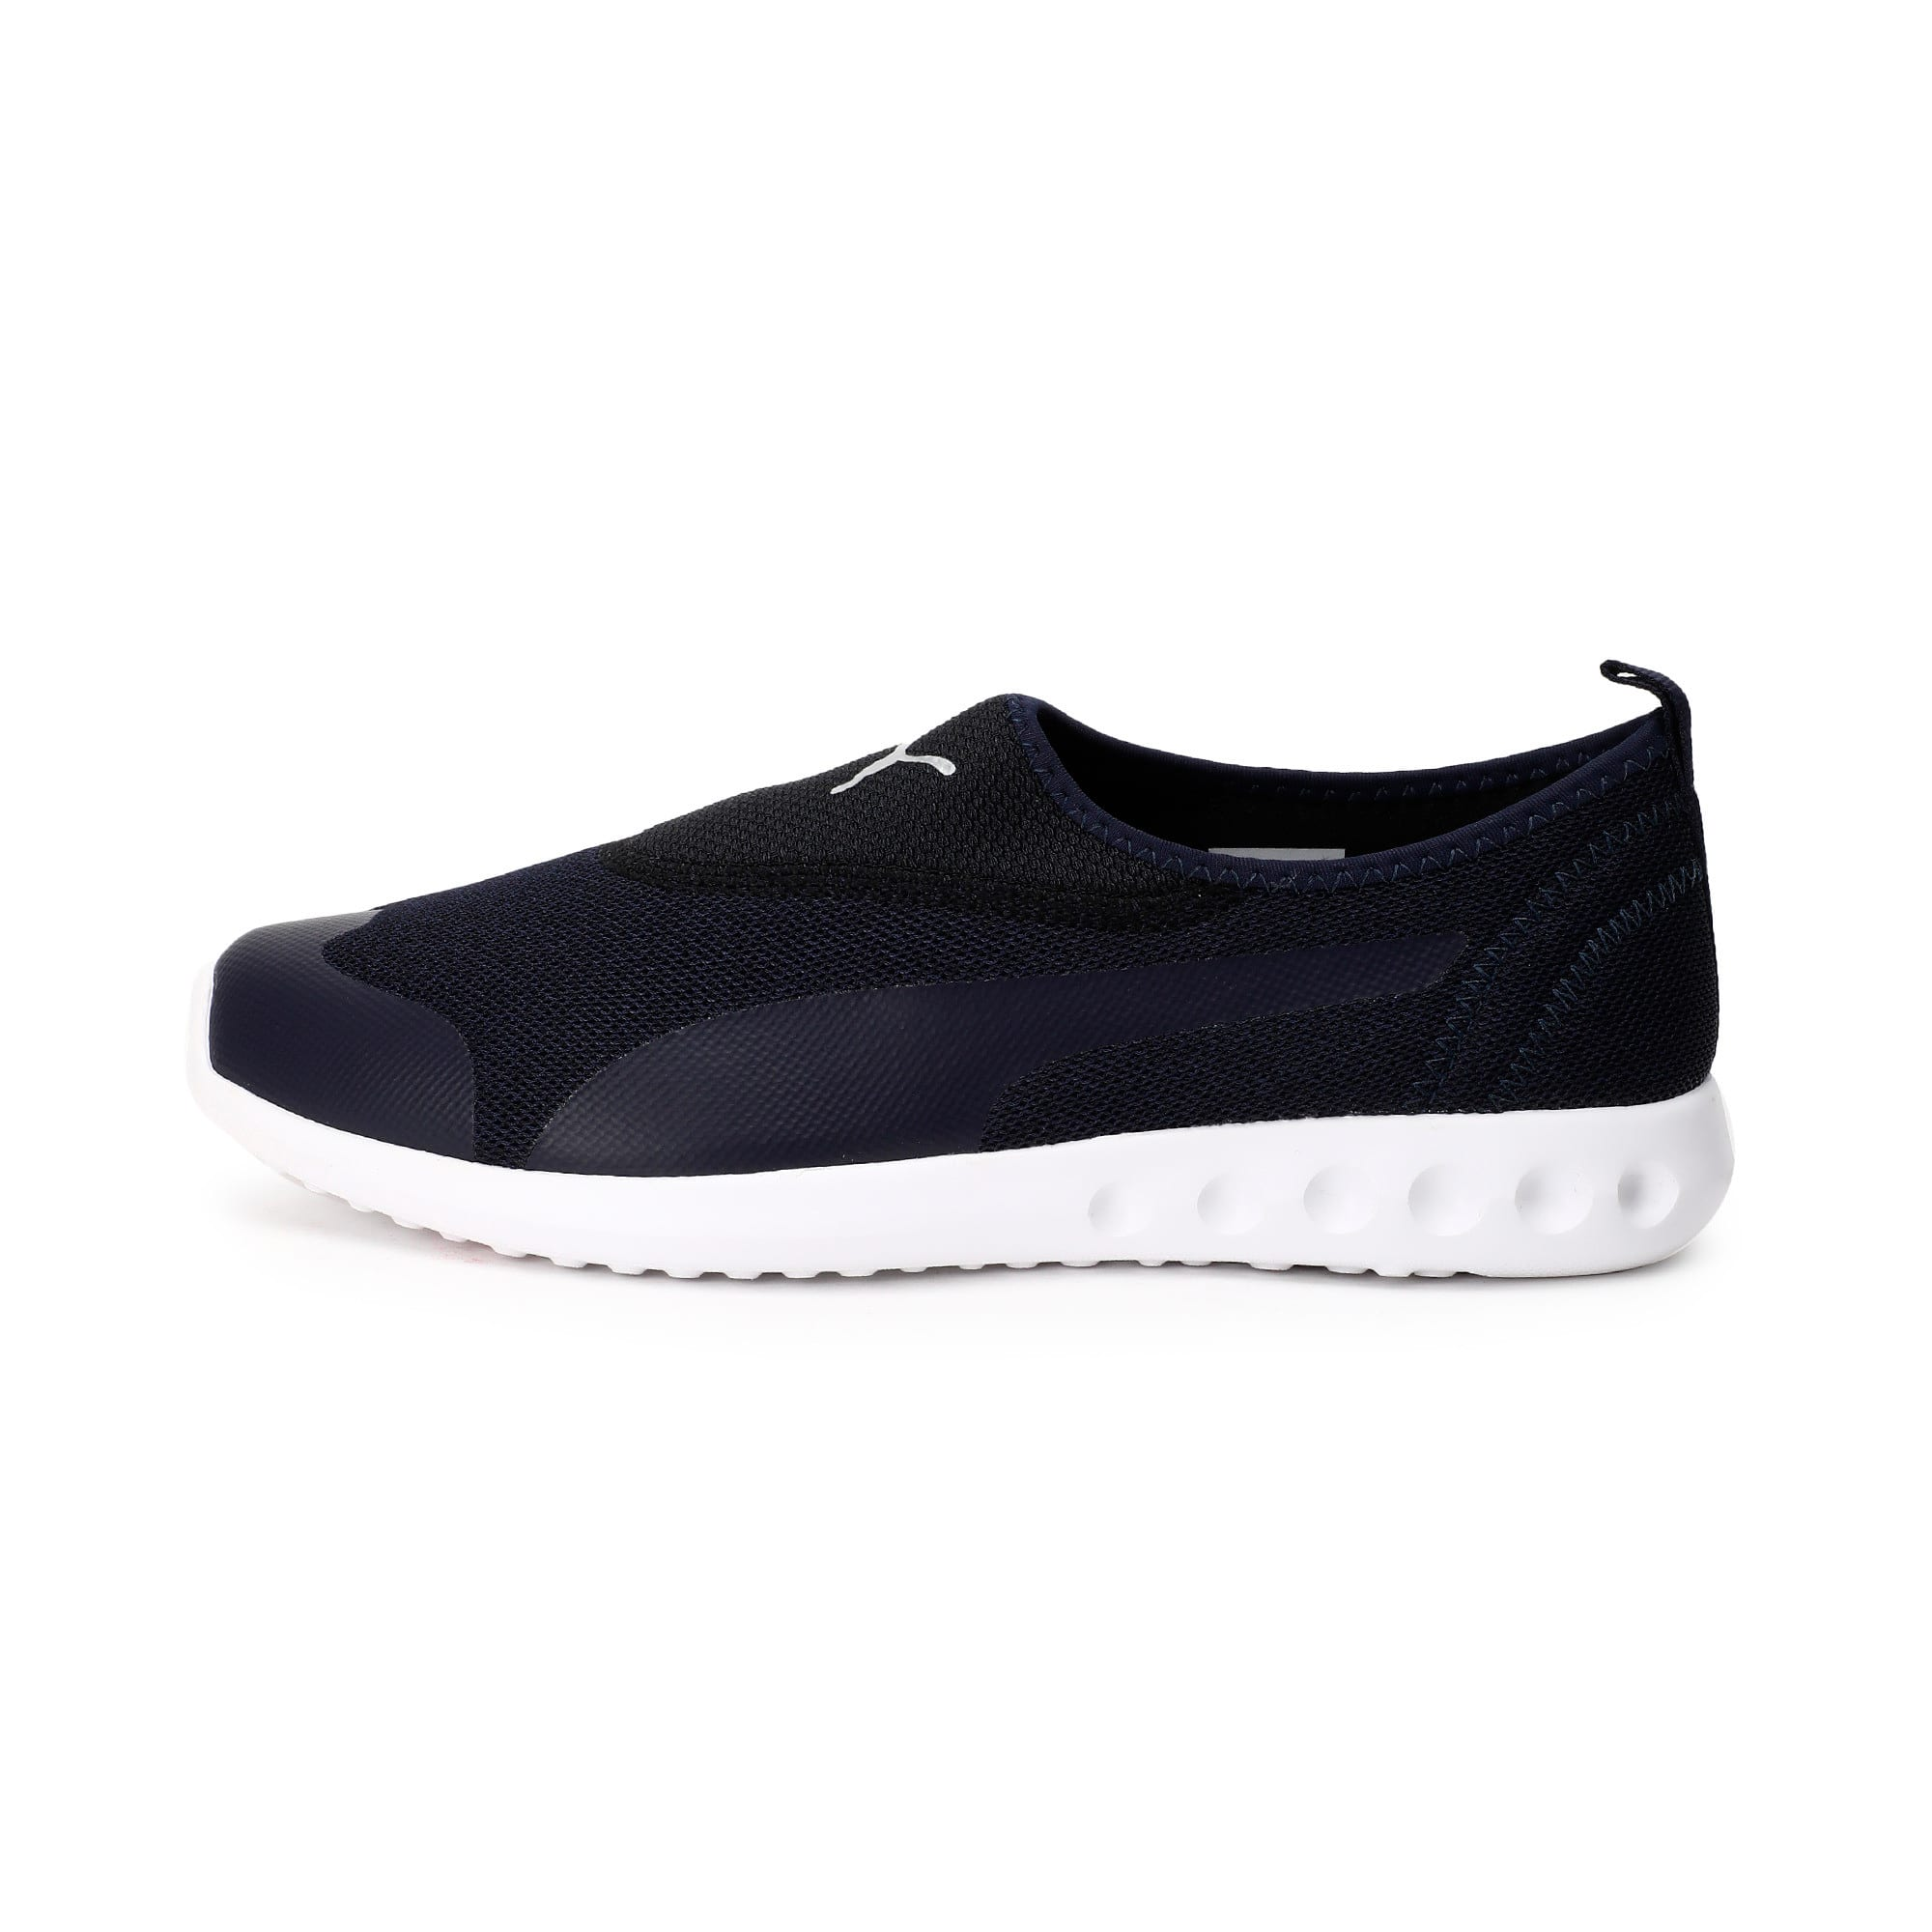 Thumbnail 1 of Concave 3 MU Slip-On IDP Puma Black-Silv, Peacoat-Silver, medium-IND